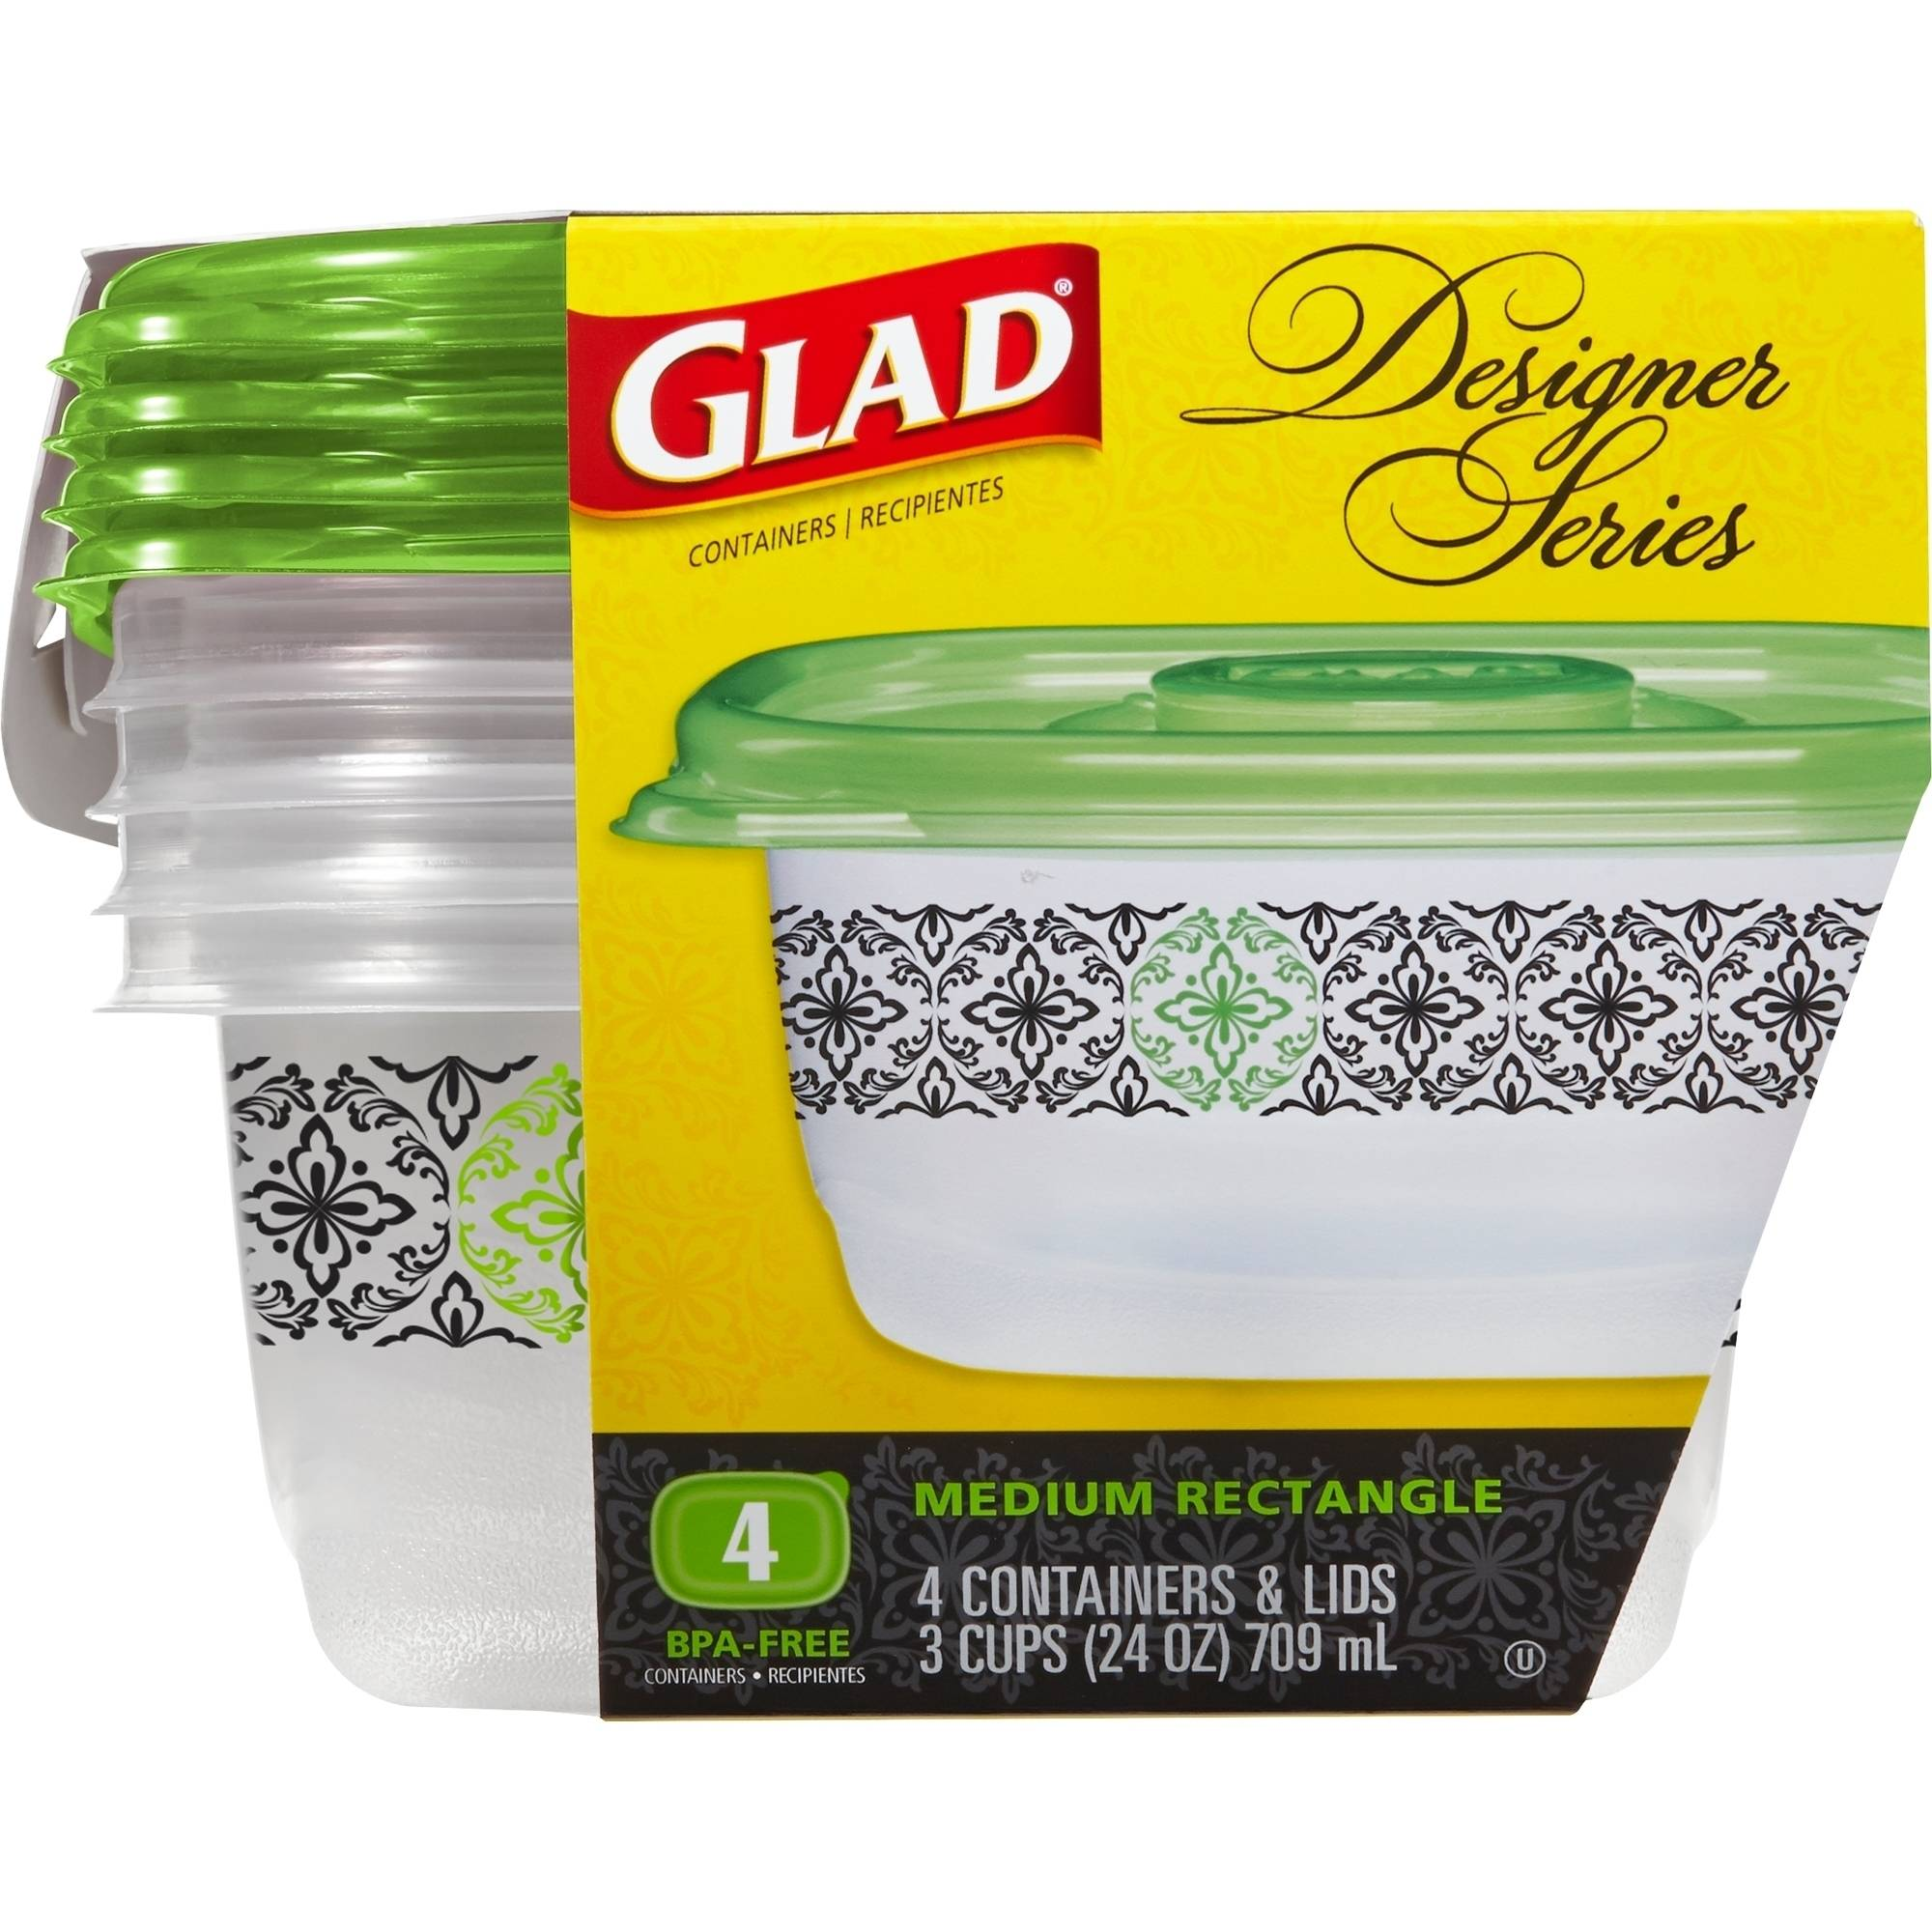 Glad Designer Series Medium Rectangle Food Storage Containers, 24 oz, 8 pc